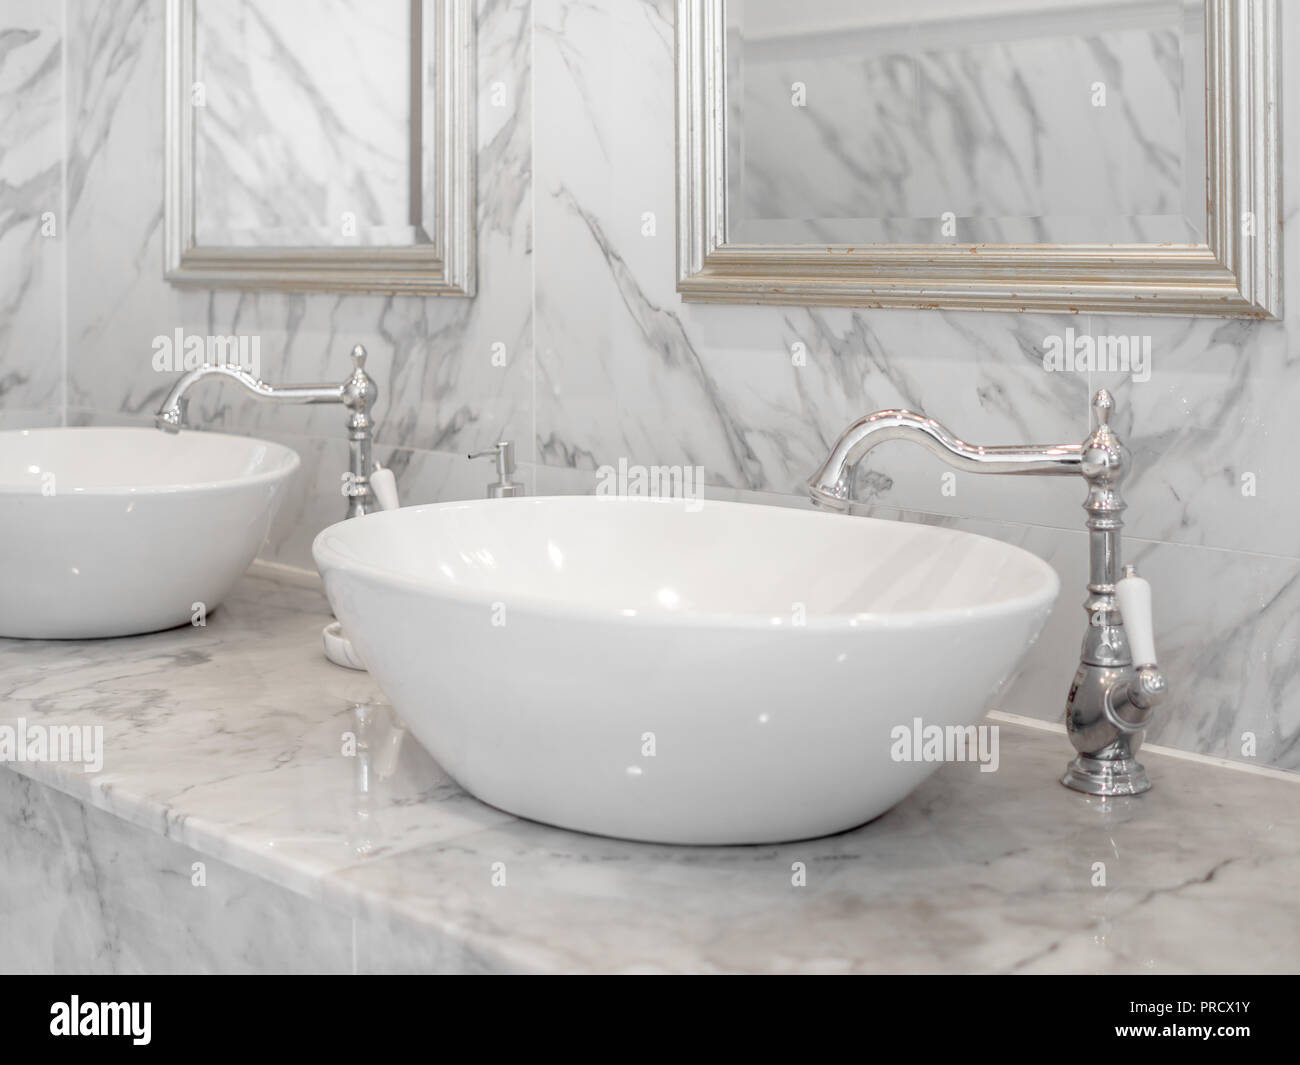 White Luxury Sink In Bathroom White Modern Interior Design Marble Bathroom With Round Wash Basin Aluminium Faucets And Mirrors On The Wall Stock Photo Alamy